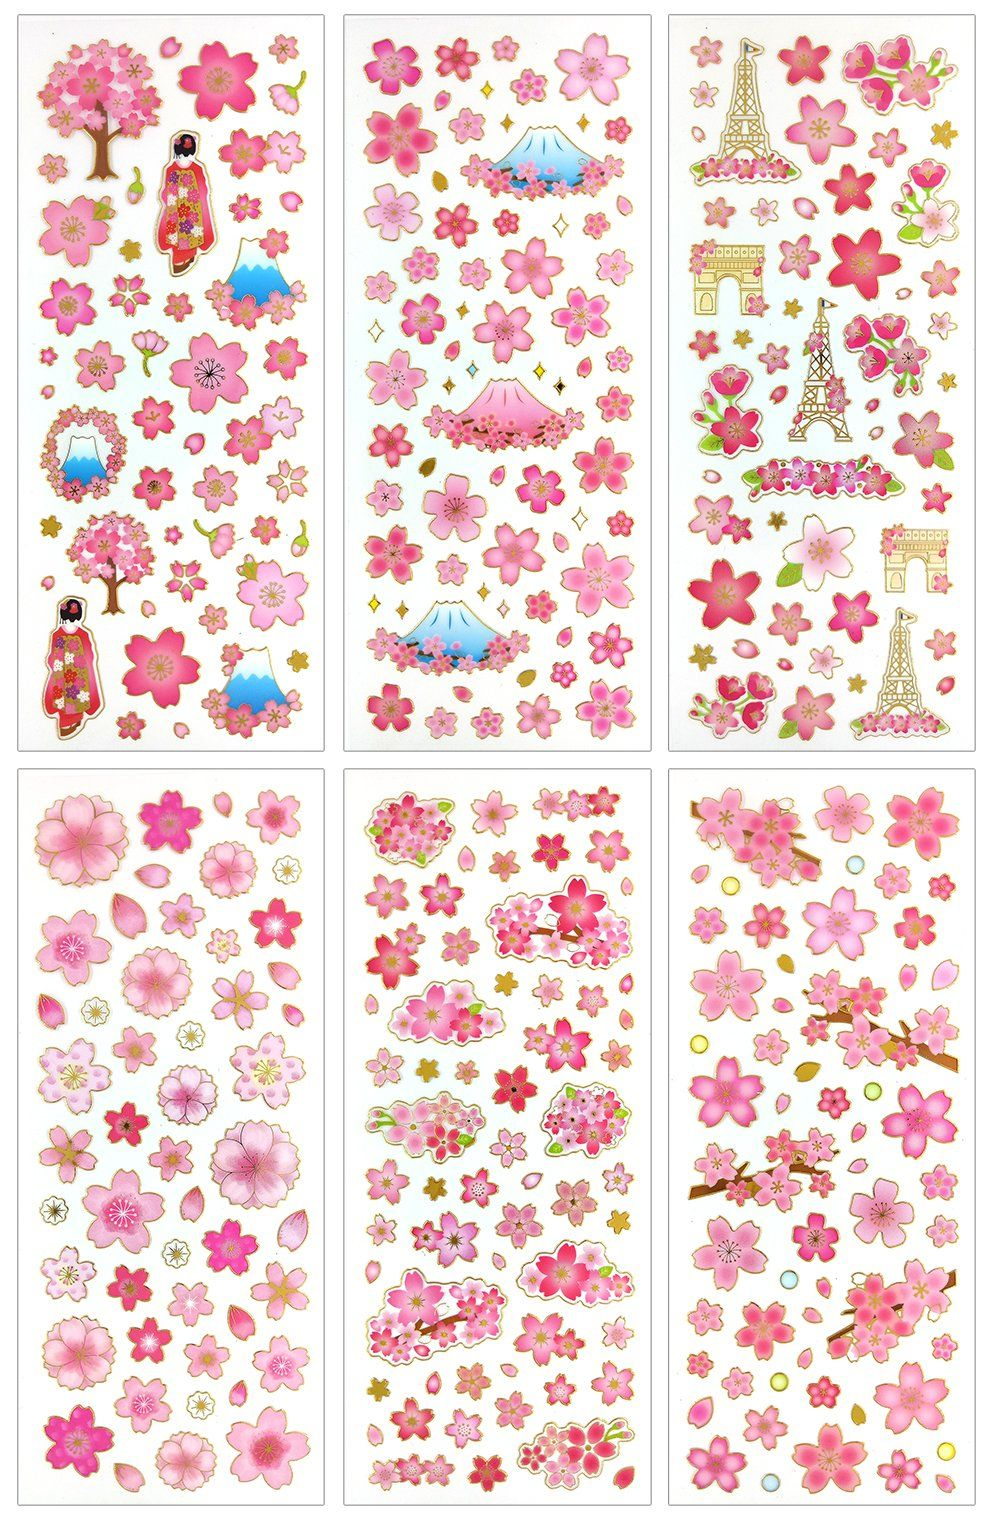 CUTE SAKURA STICKERS Cherry Blossom Paper Sticker Sheet Kawaii Craft Scrapbook